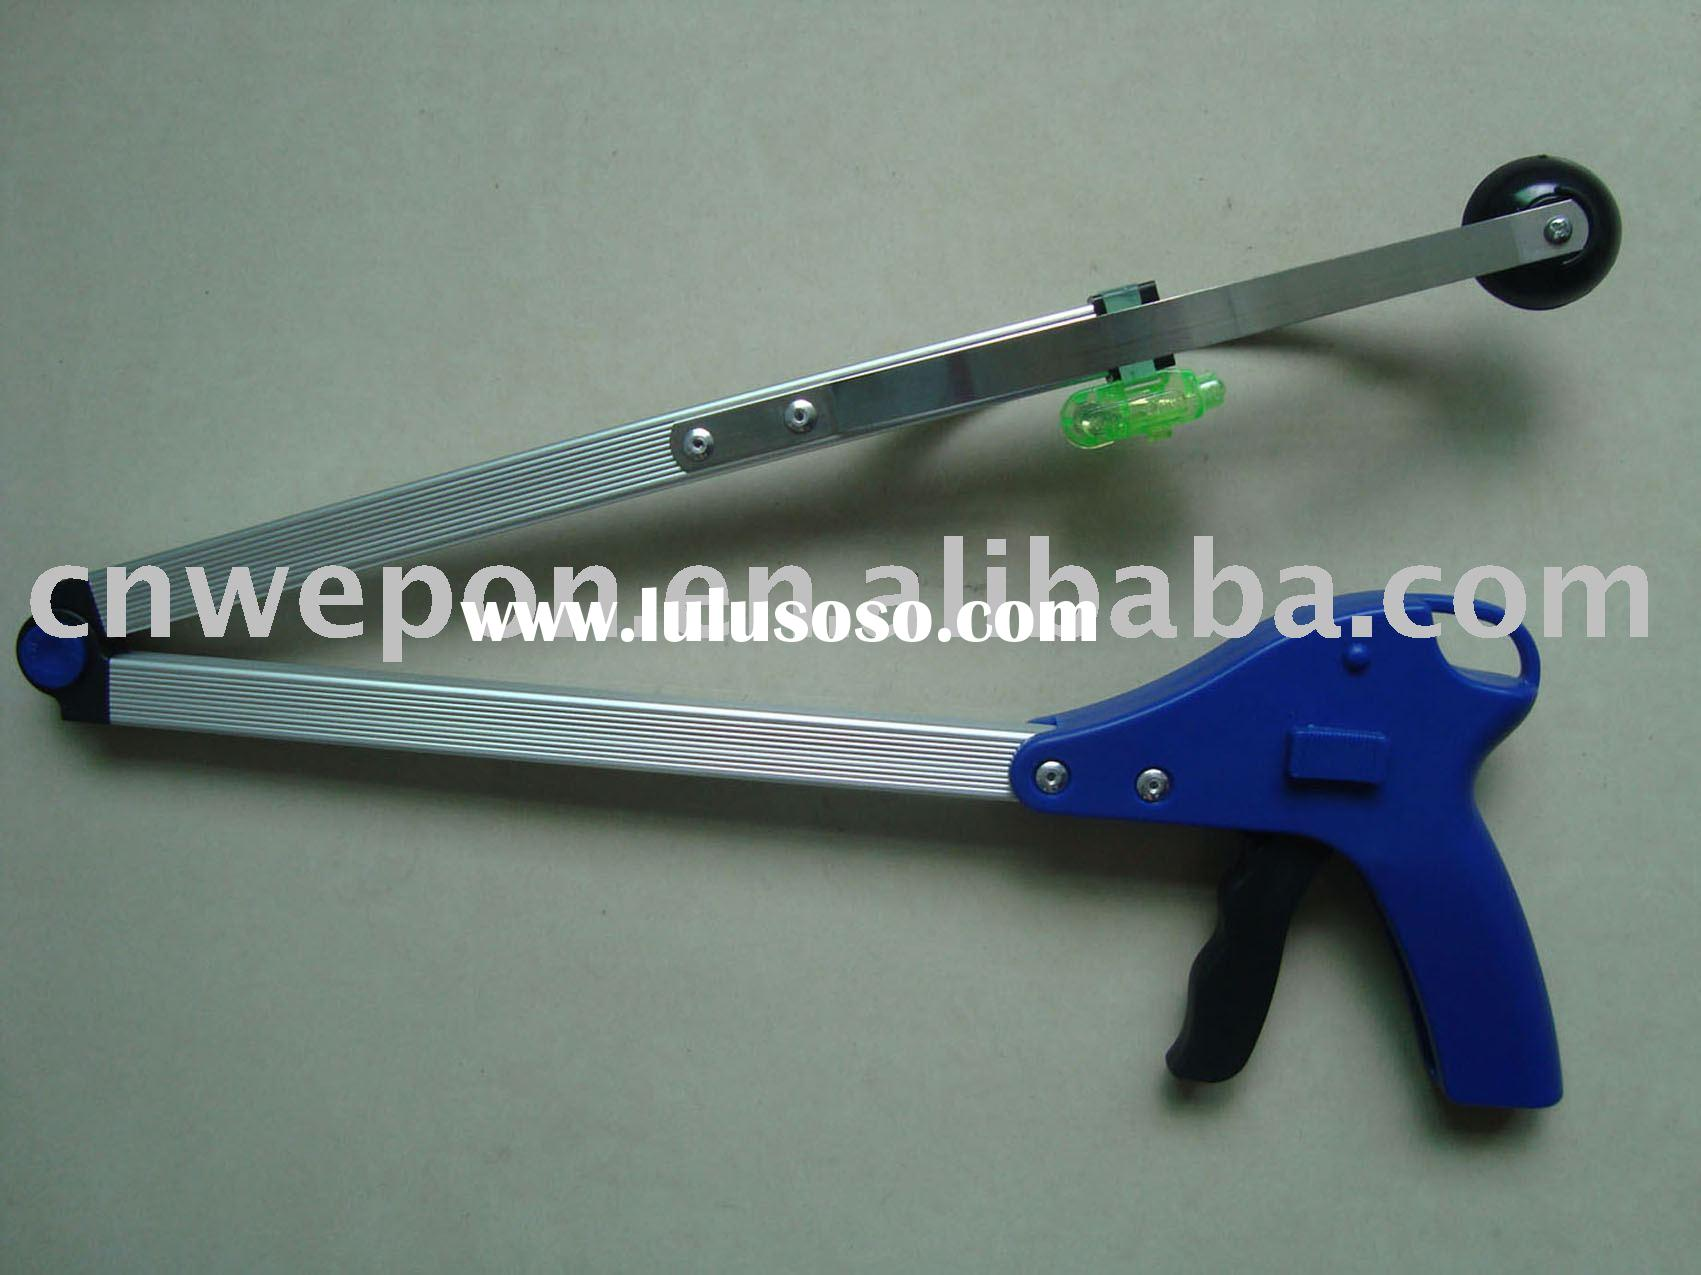 LED folding reacher grabbing tool,pick up tool,rubbish picker